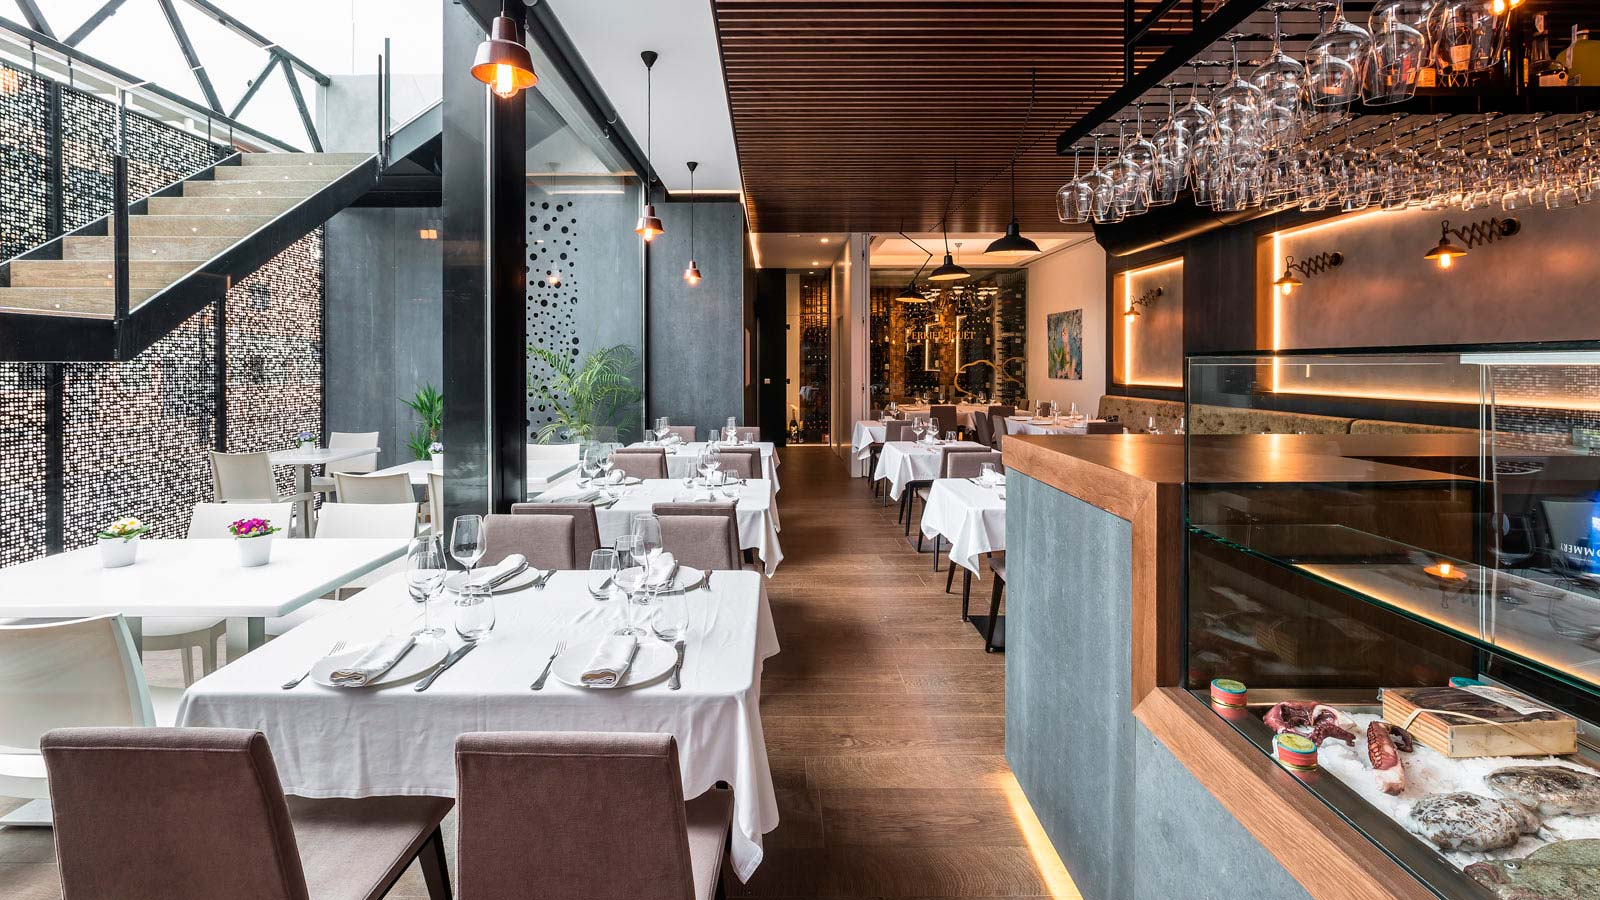 PORCELANOSA Grupo Projects: El Gordo y el Flaco, the restaurant that brings Mediterranean food and Nordic interior design together